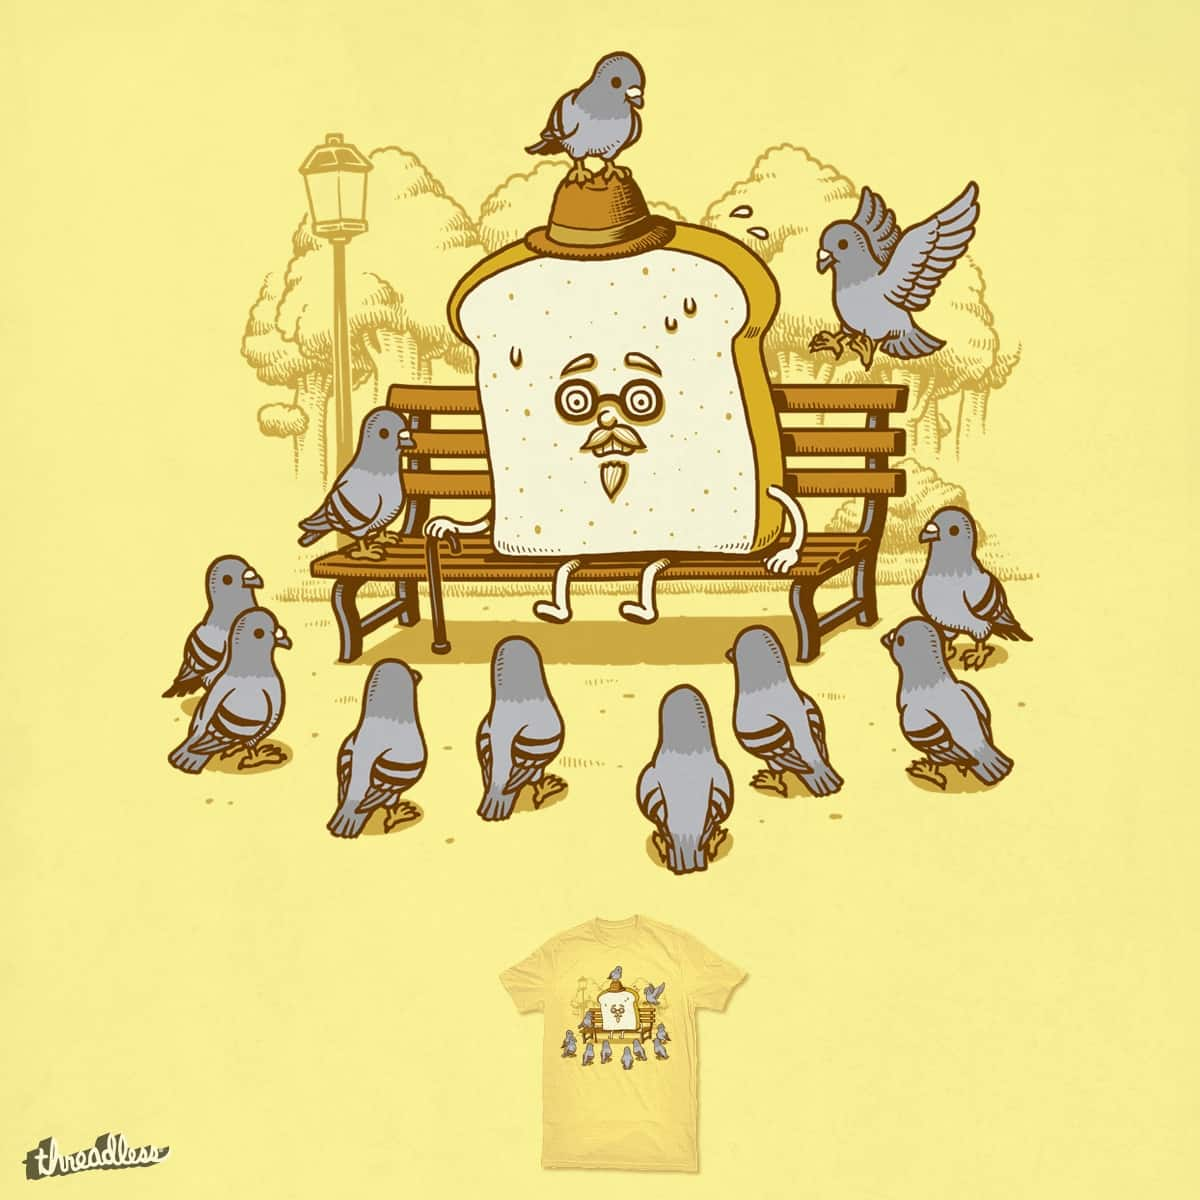 Pigeons And The Bread by ben chen on Threadless